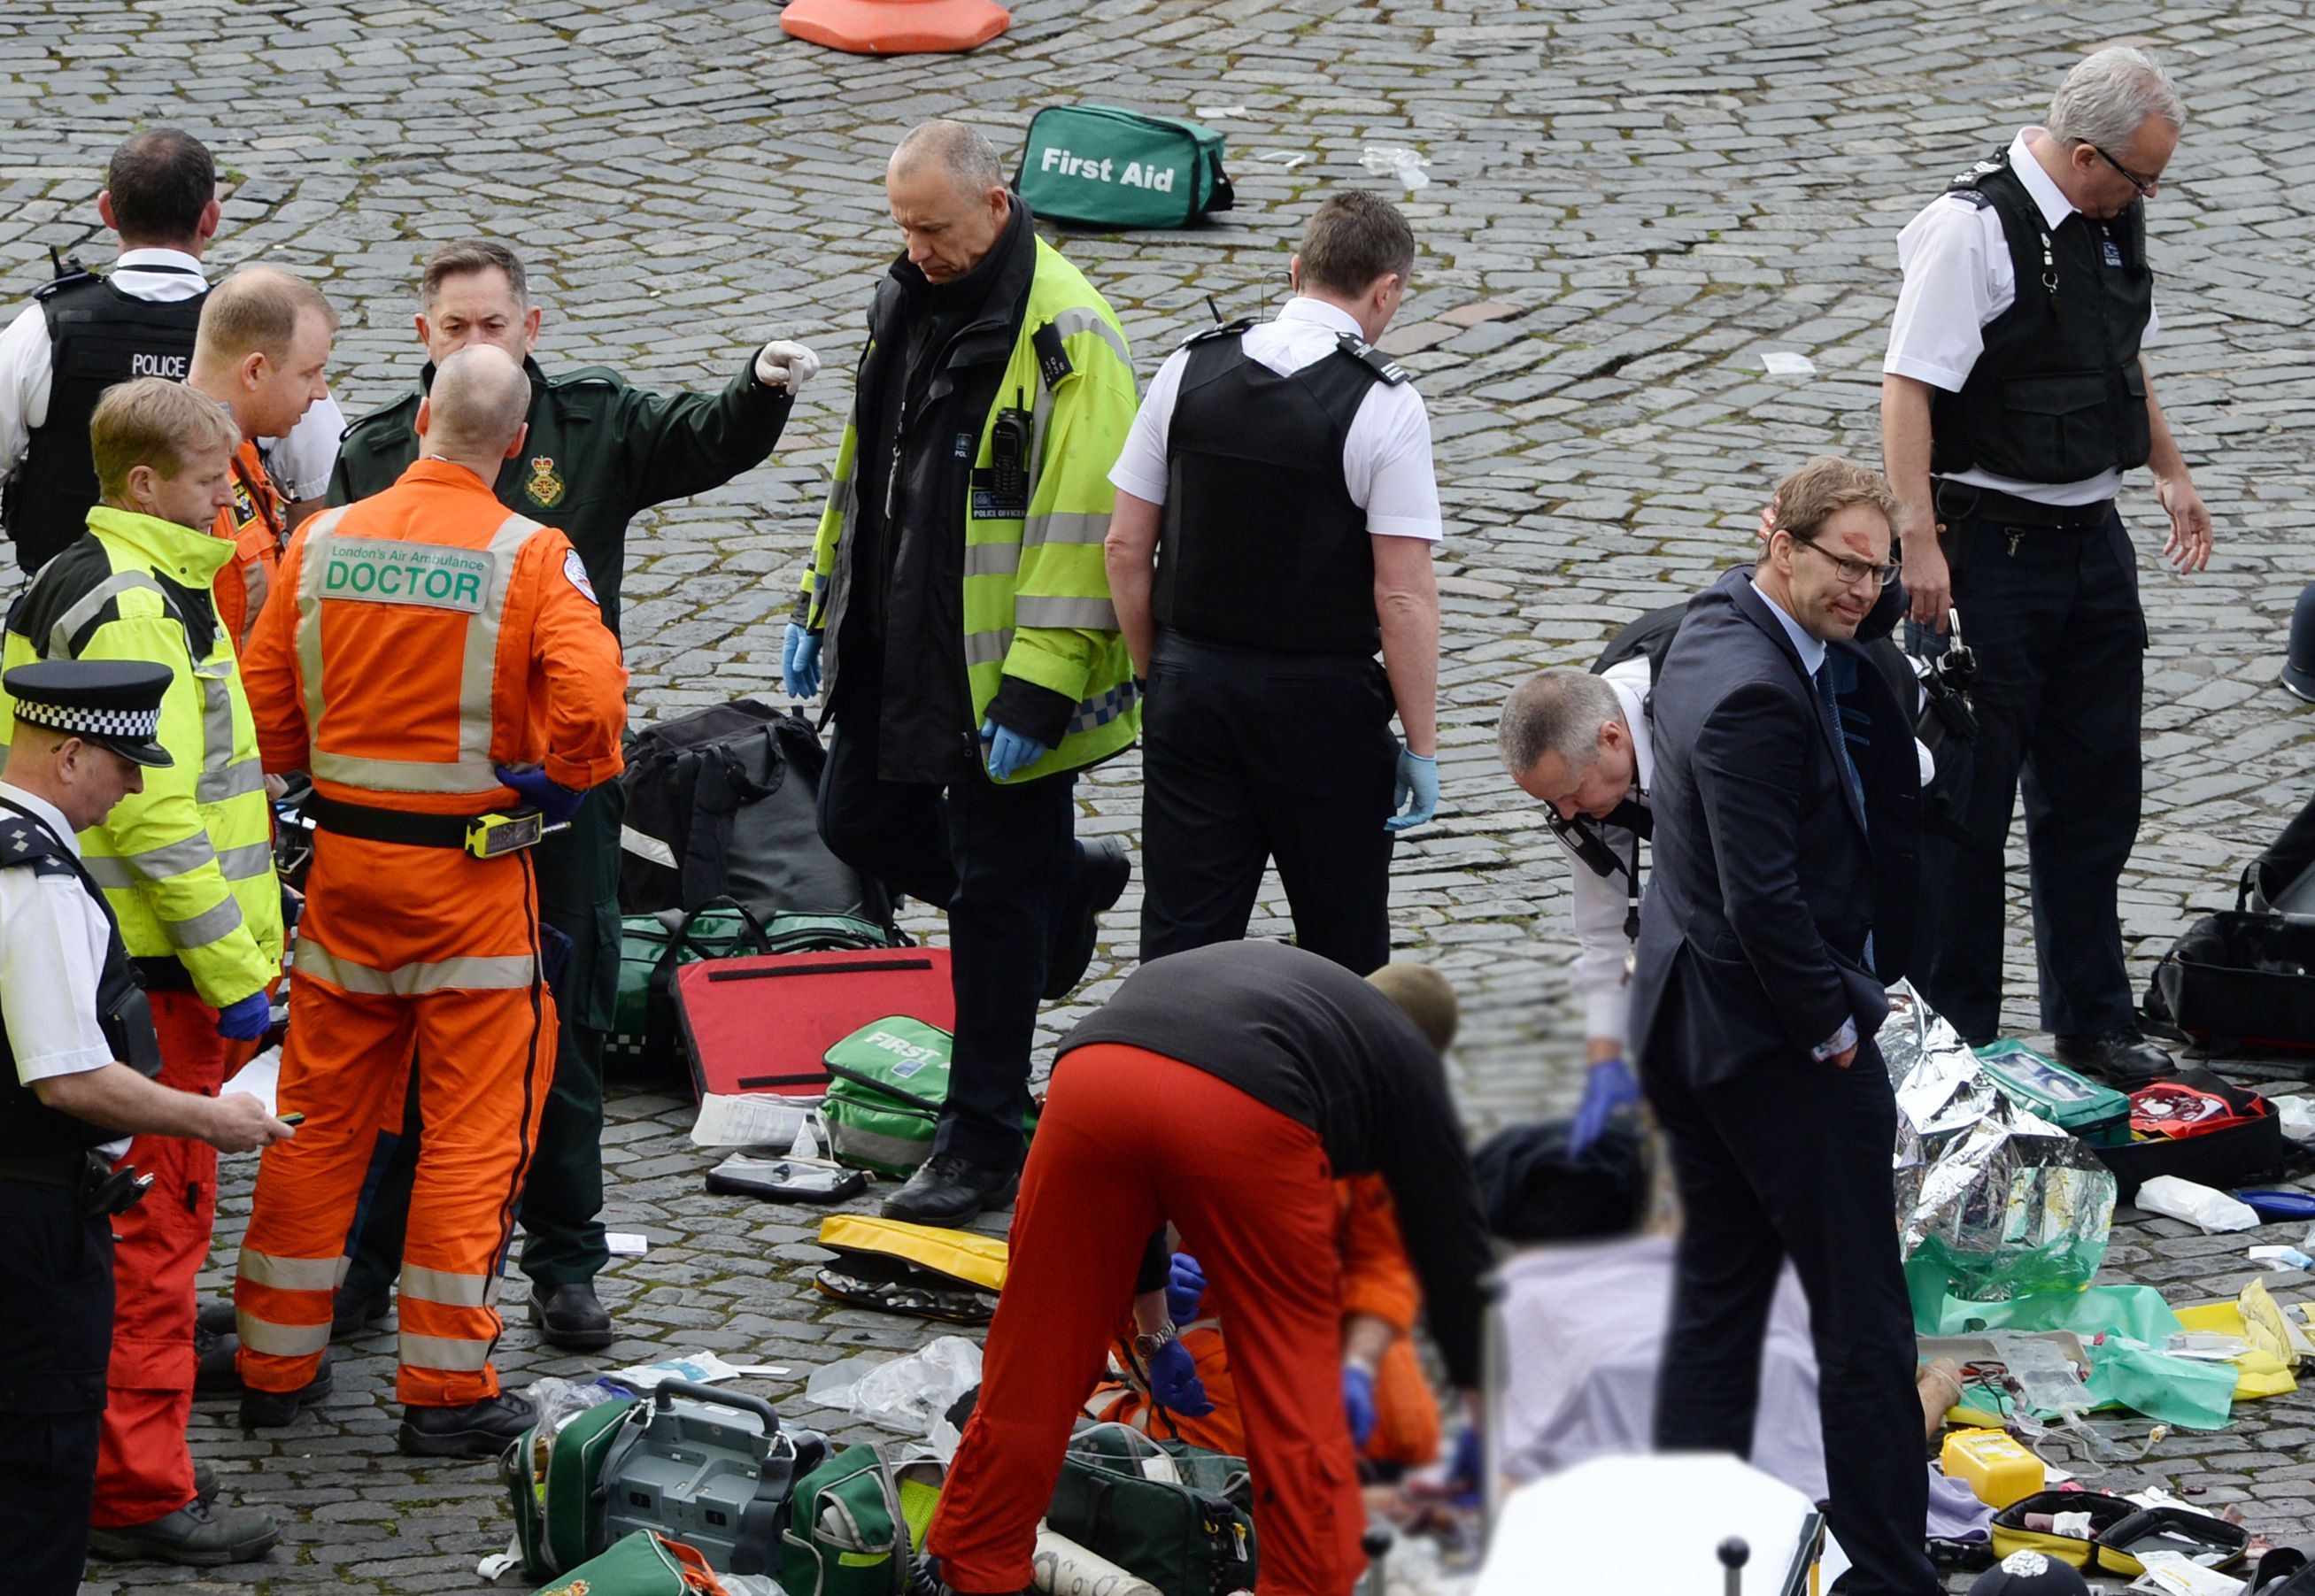 Minister Gave CPR To Injured Police Officer During Westminster